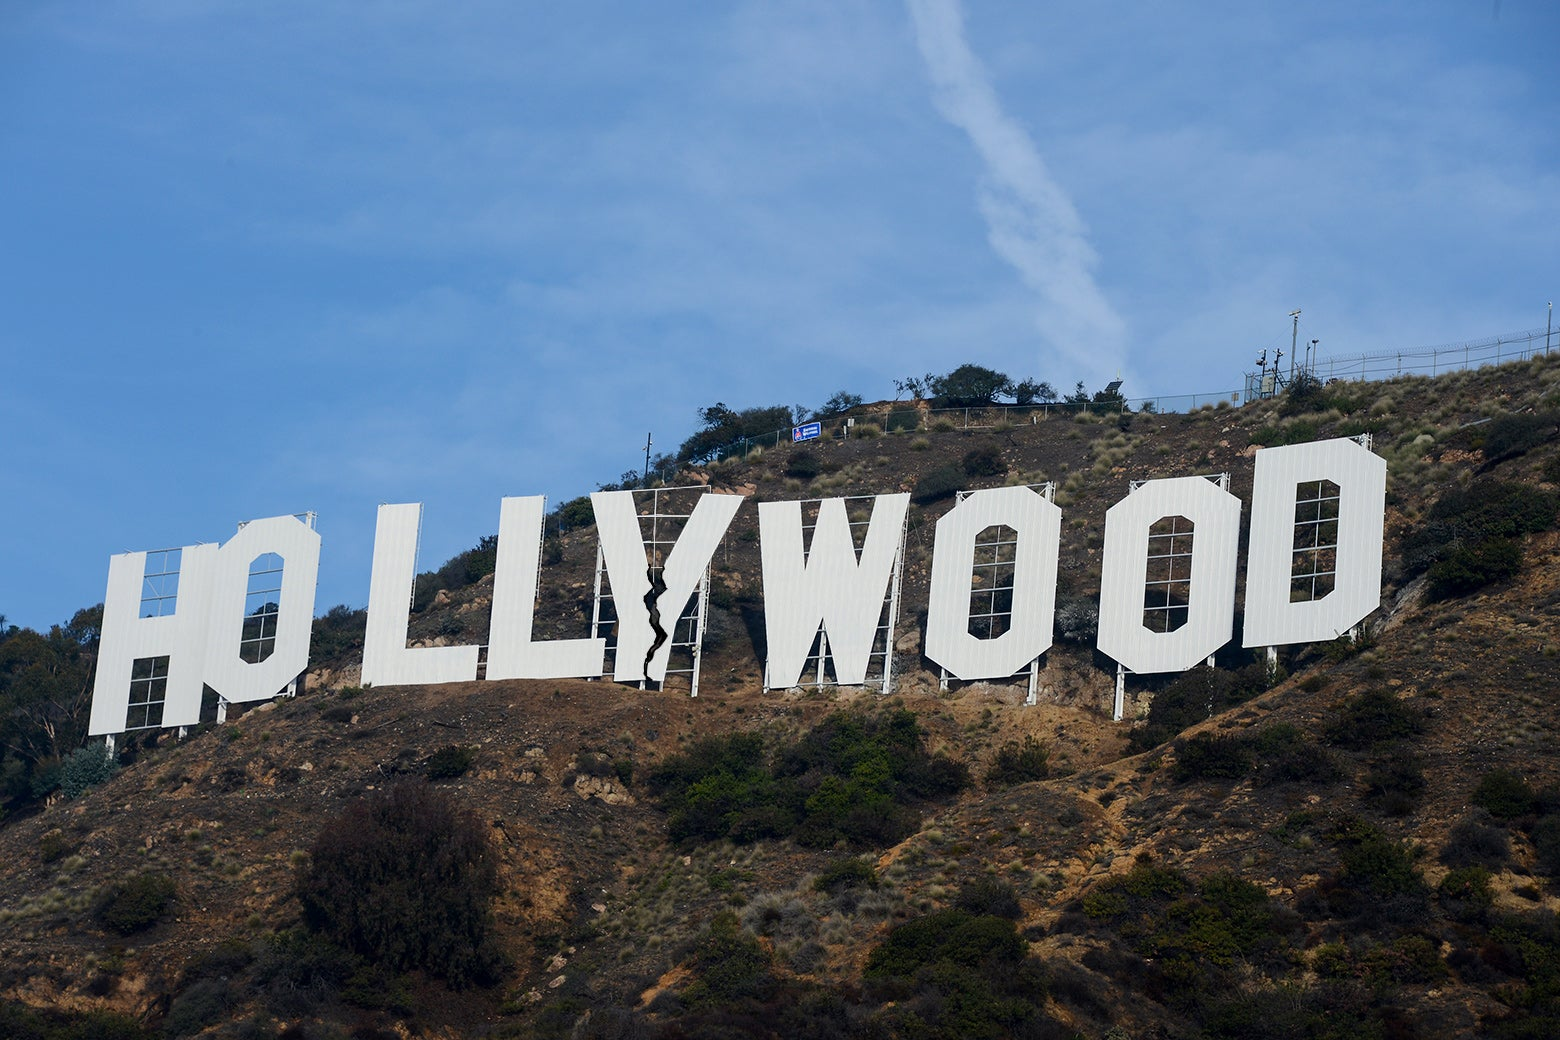 A picture of the Hollywood sign, with a schism down the middle.